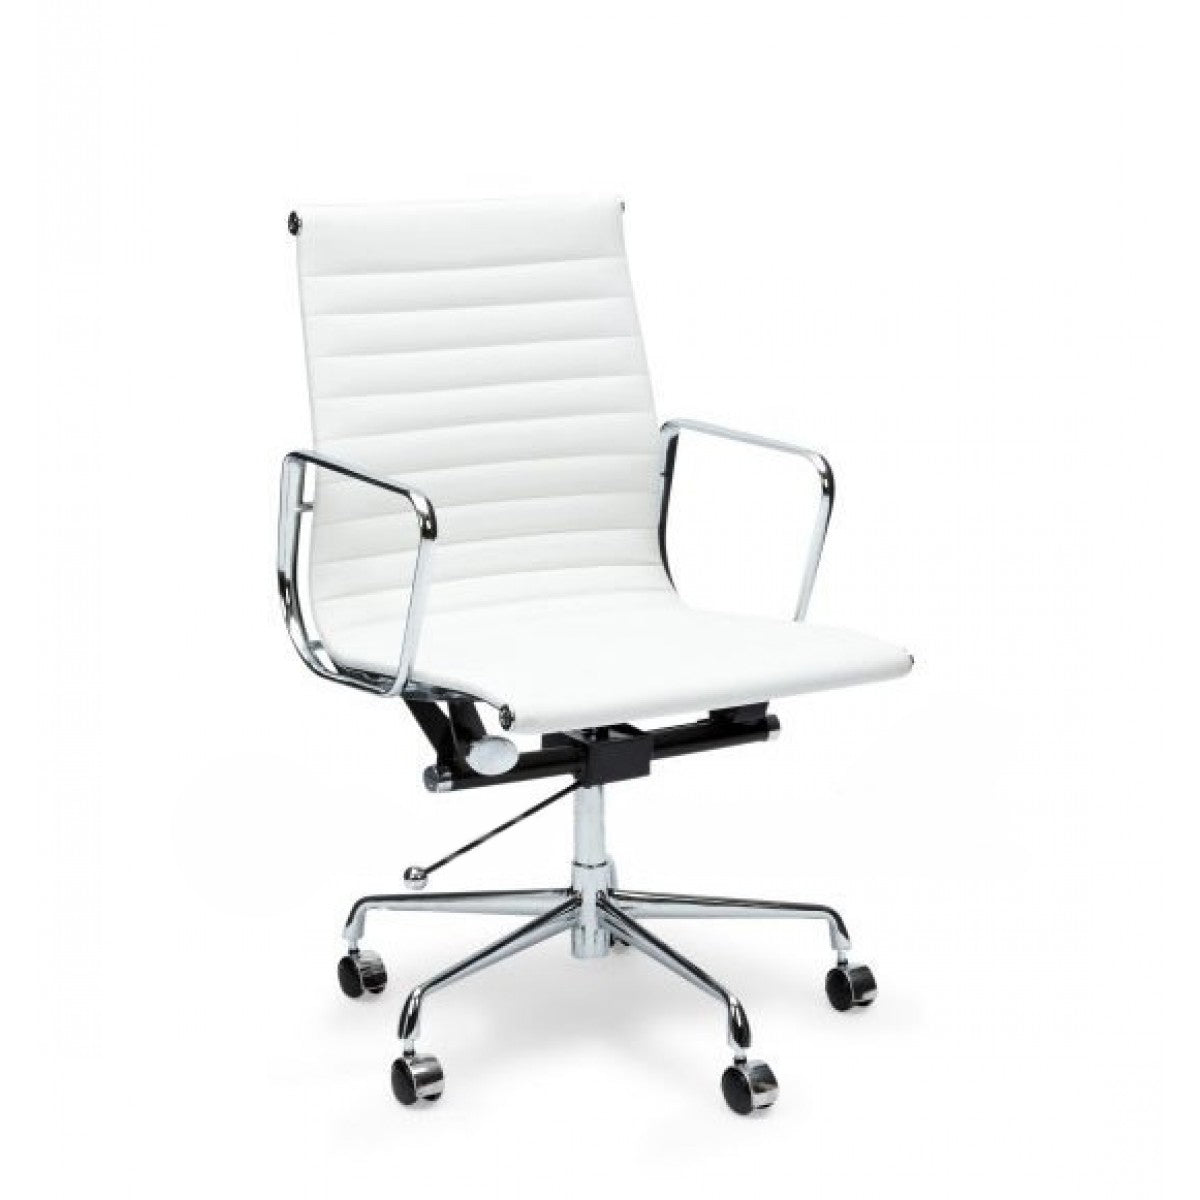 Admirable Calibre Pu Leather Ergonomic Swivel Office Home Office Desk Chair Replica In White Or Black With Wide Seat Removable Armrests Free Delivery Ncnpc Chair Design For Home Ncnpcorg